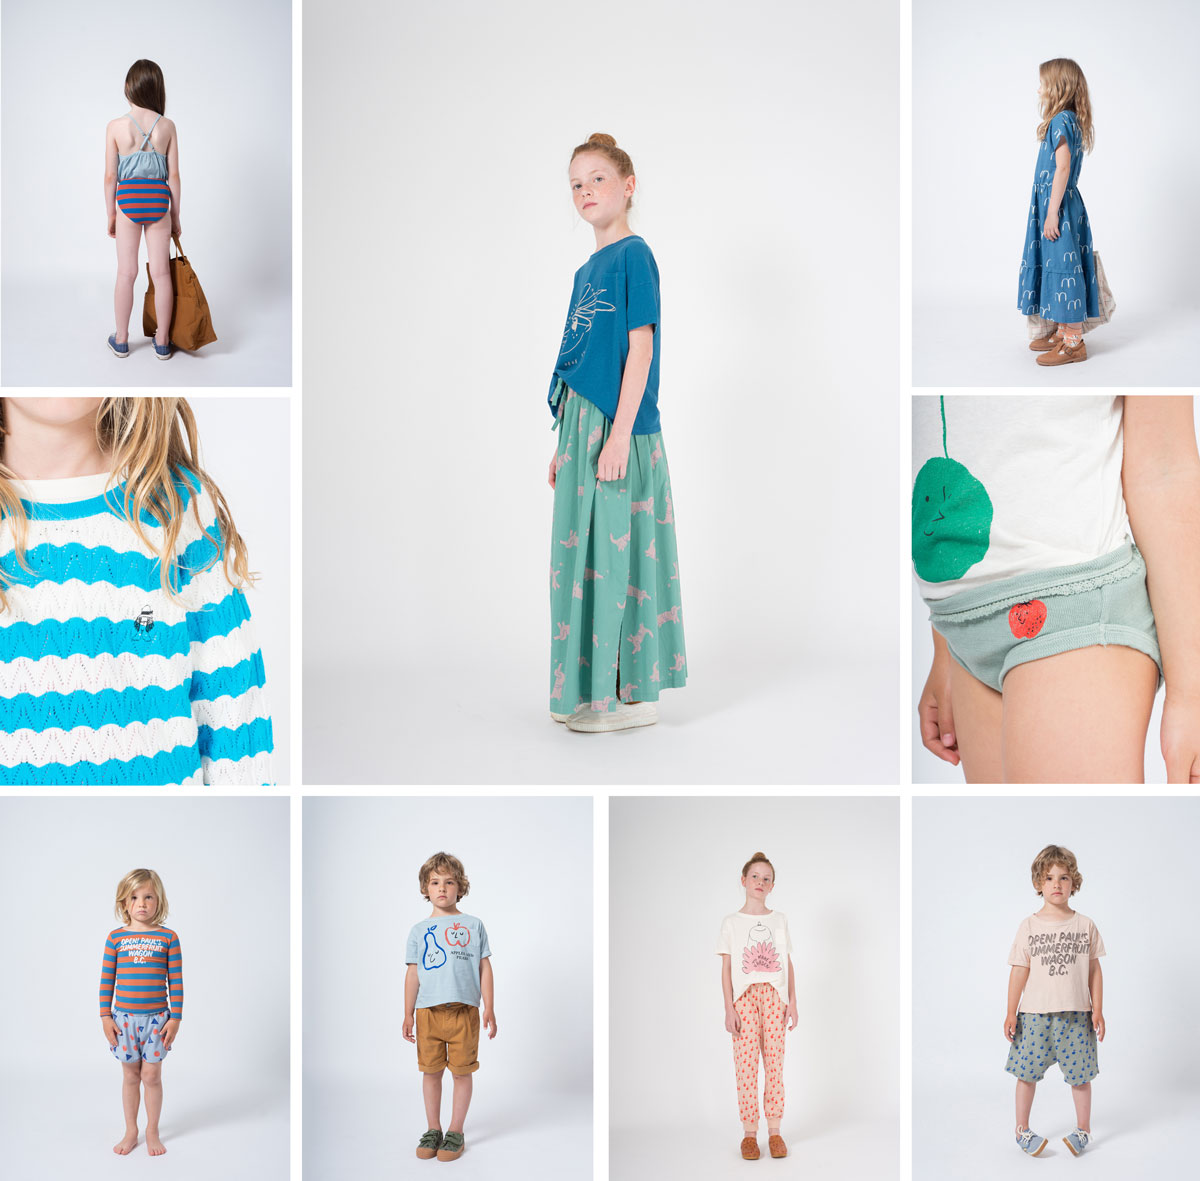 Collection Bobo Choses Printemps - Été 2019